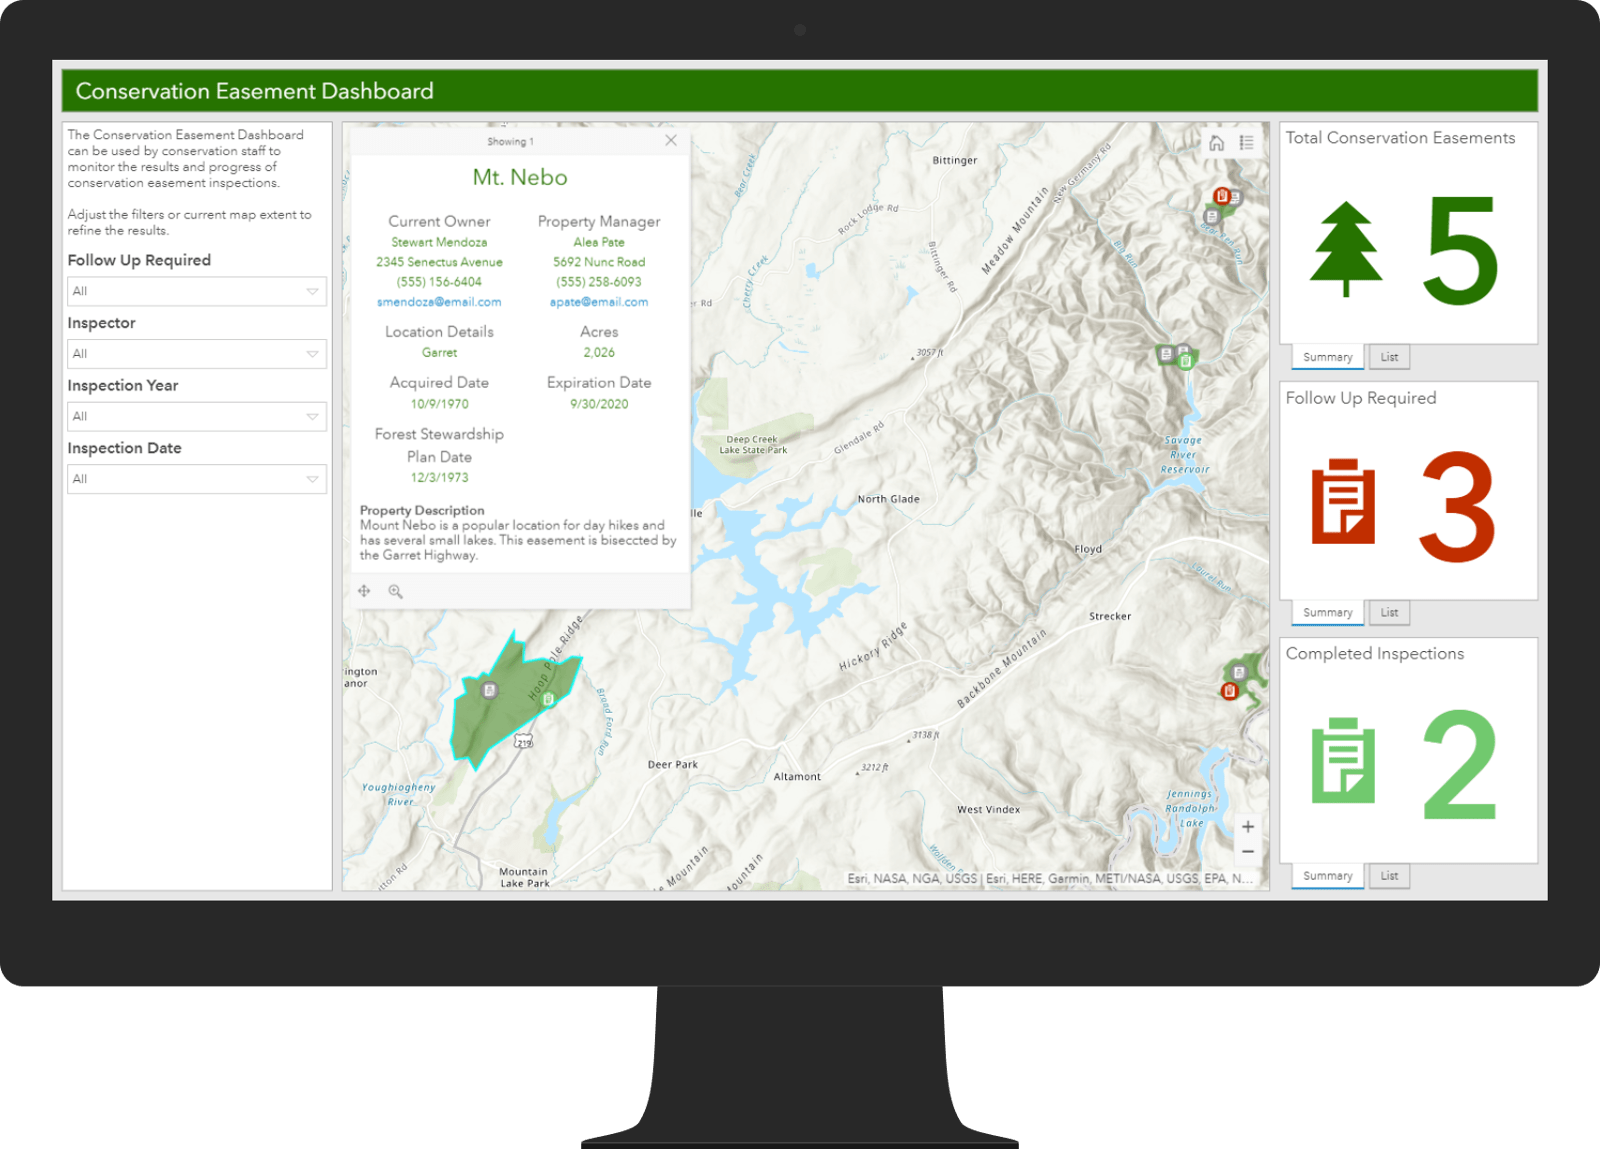 Conservation Easement Dashboard